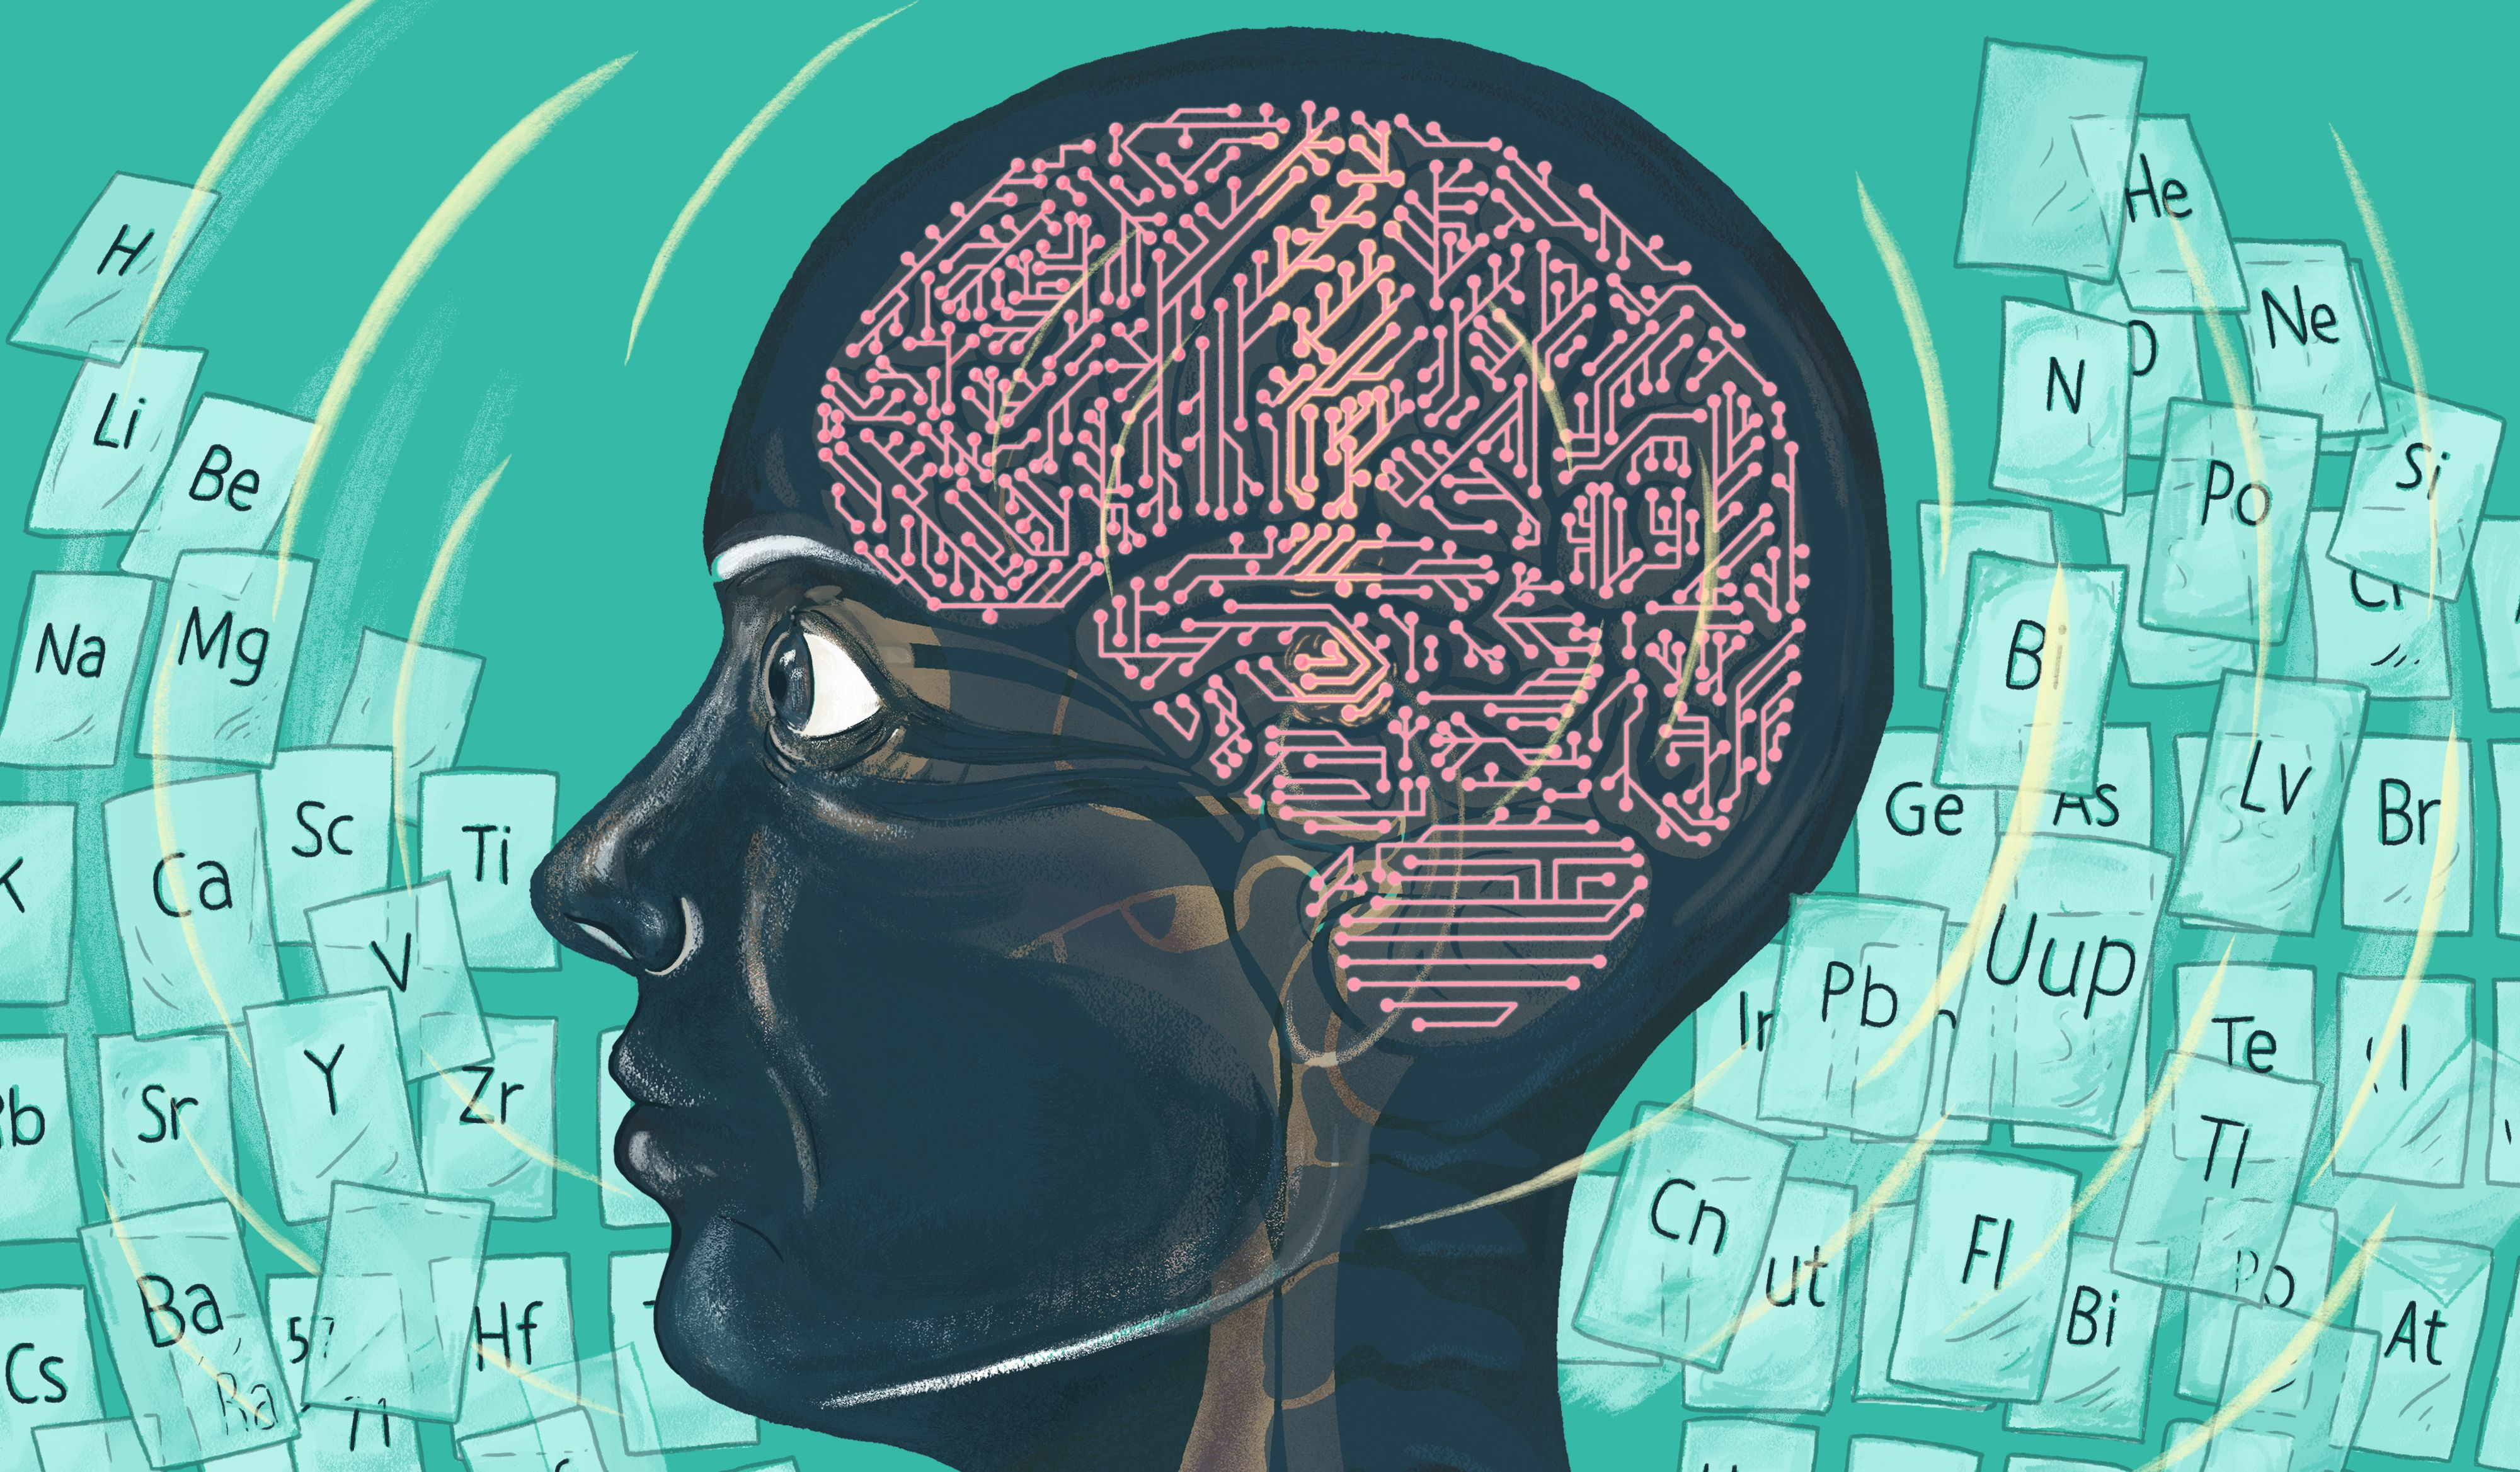 Ai Recreates Chemistry S Periodic Table Of Elements